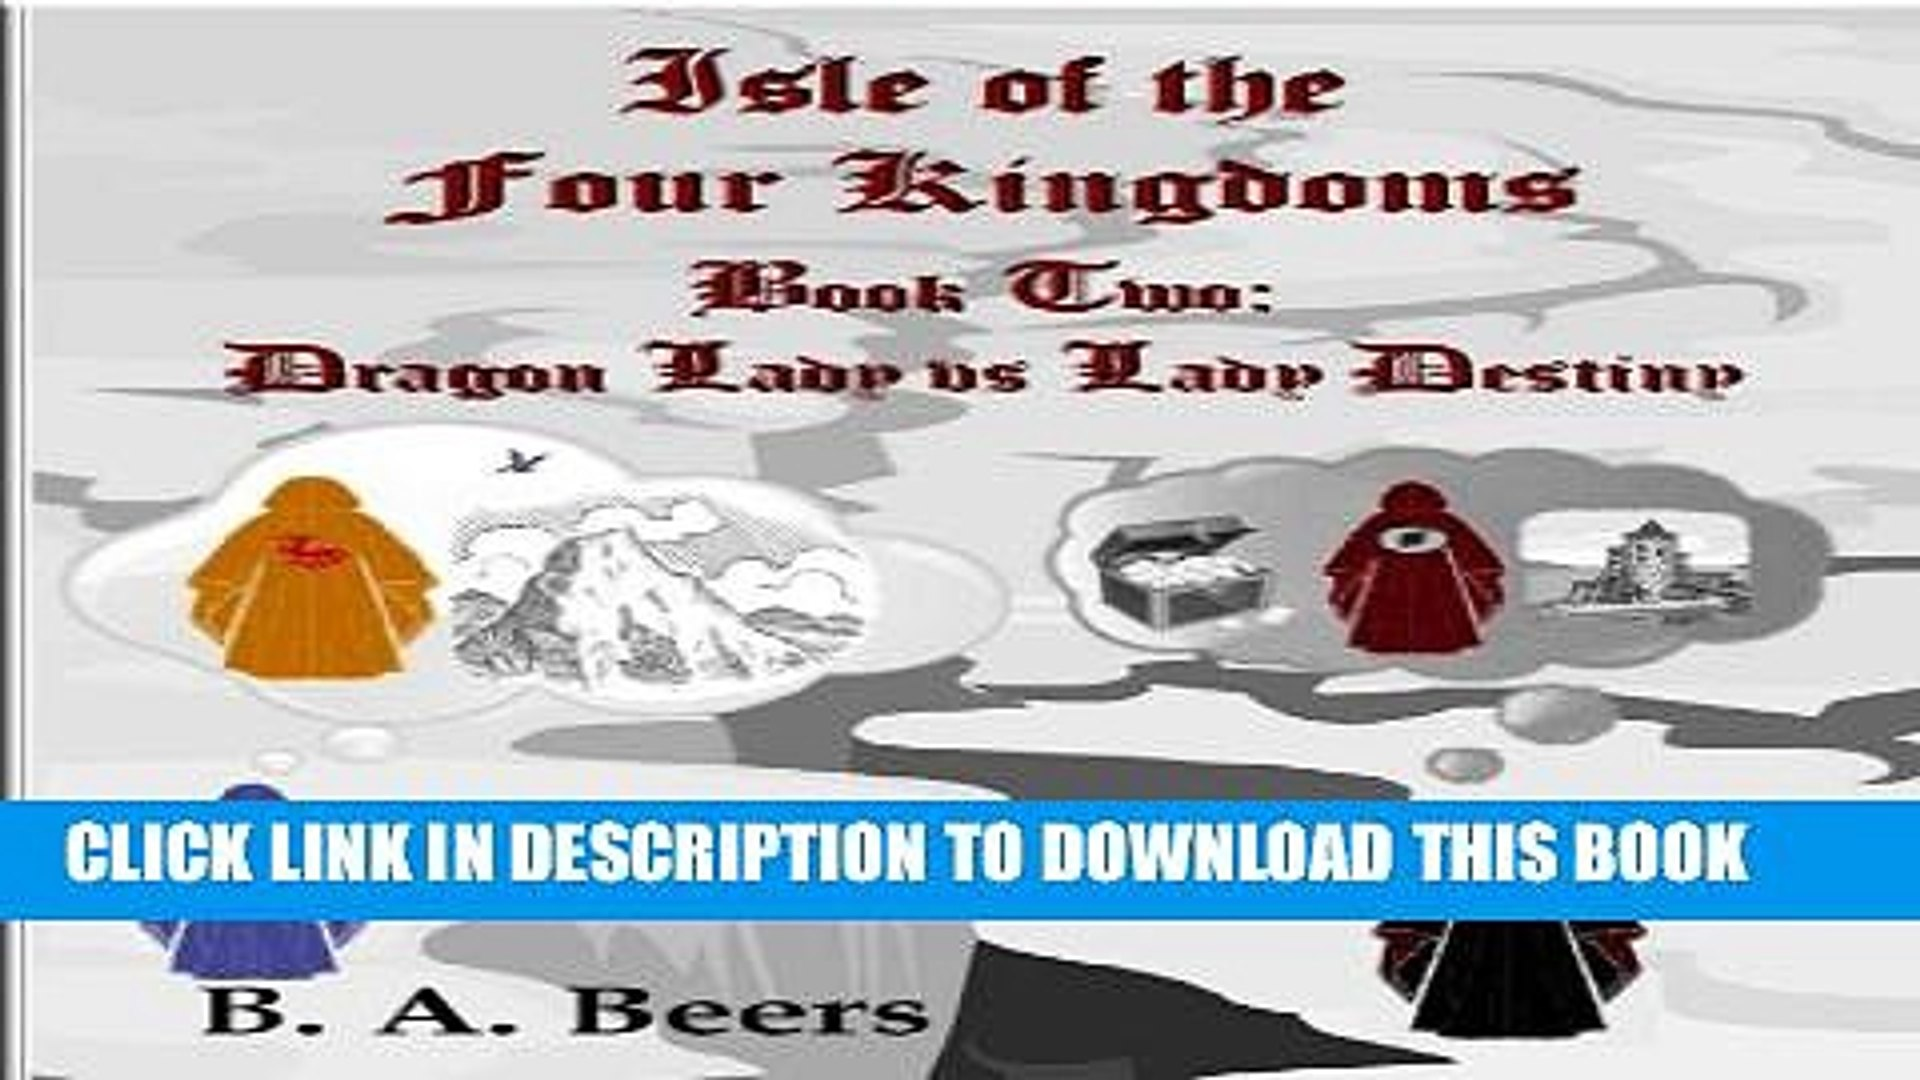 [PDF] Dragon Lady vs Lady Destiny: Isle of the Four Kingdoms (Volume 2) Full Online